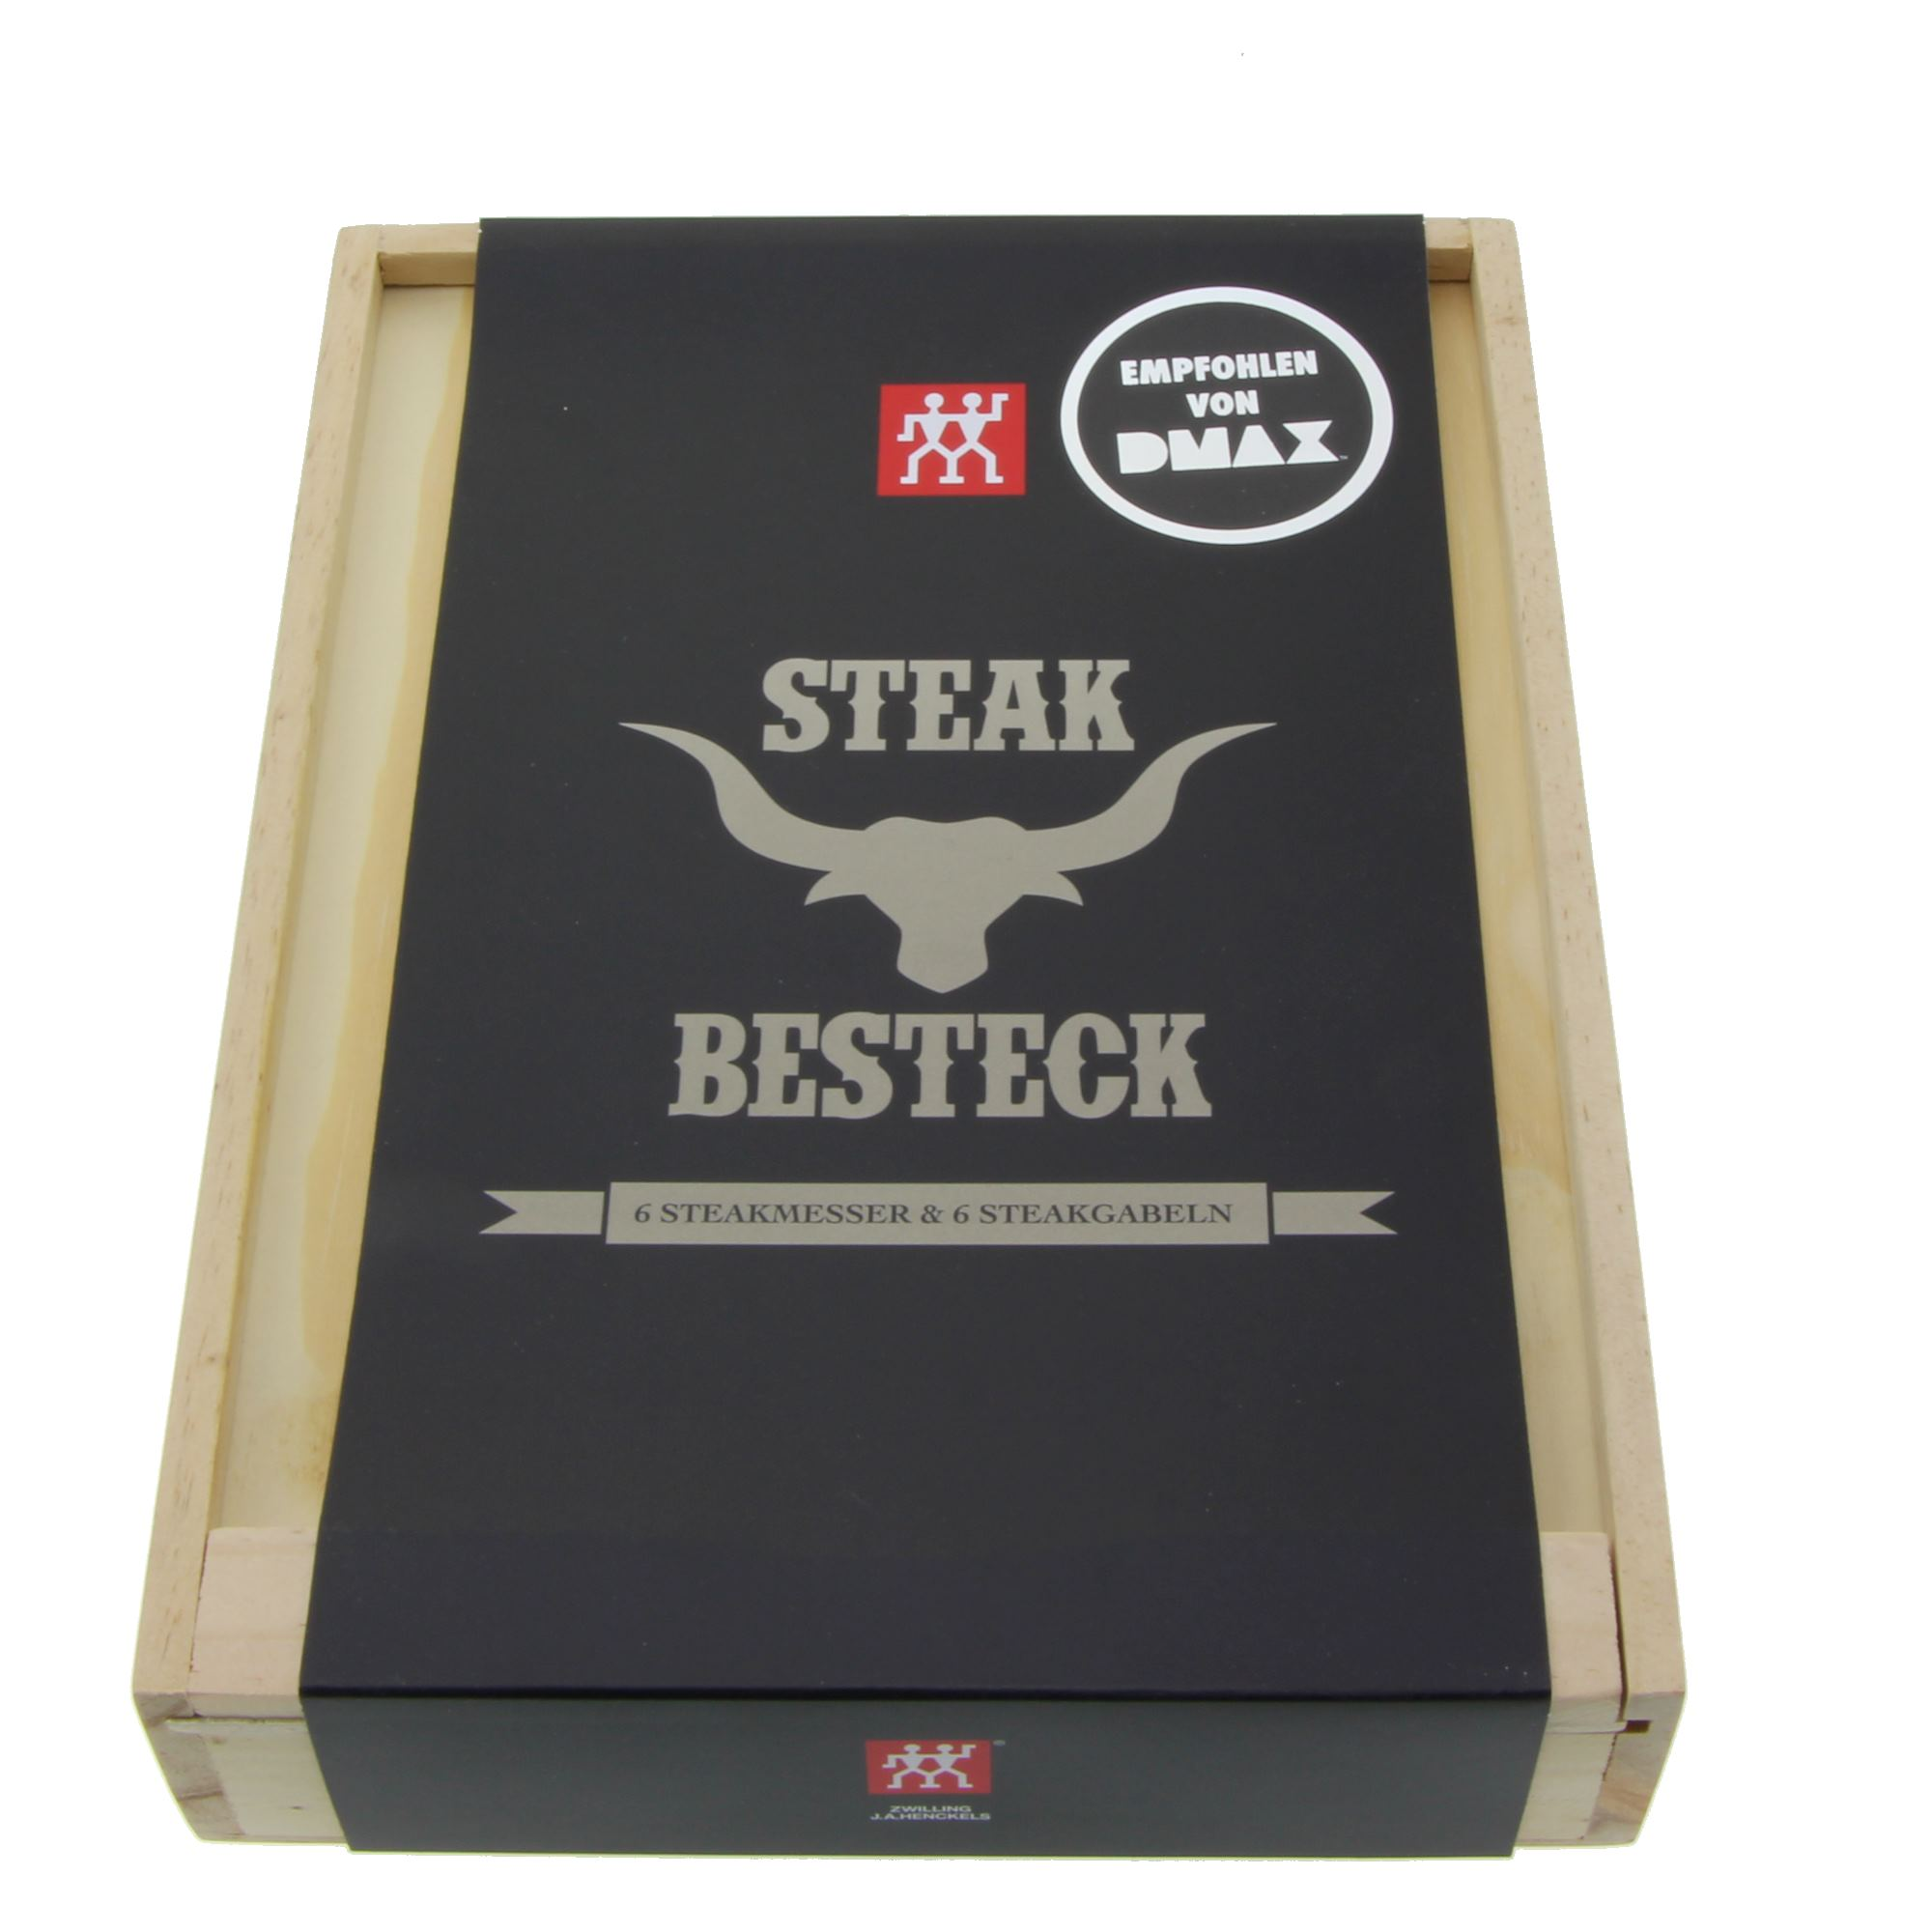 zwilling steakbesteck grillbesteck set 12 teilig in holzbox 4009839397134 ebay. Black Bedroom Furniture Sets. Home Design Ideas